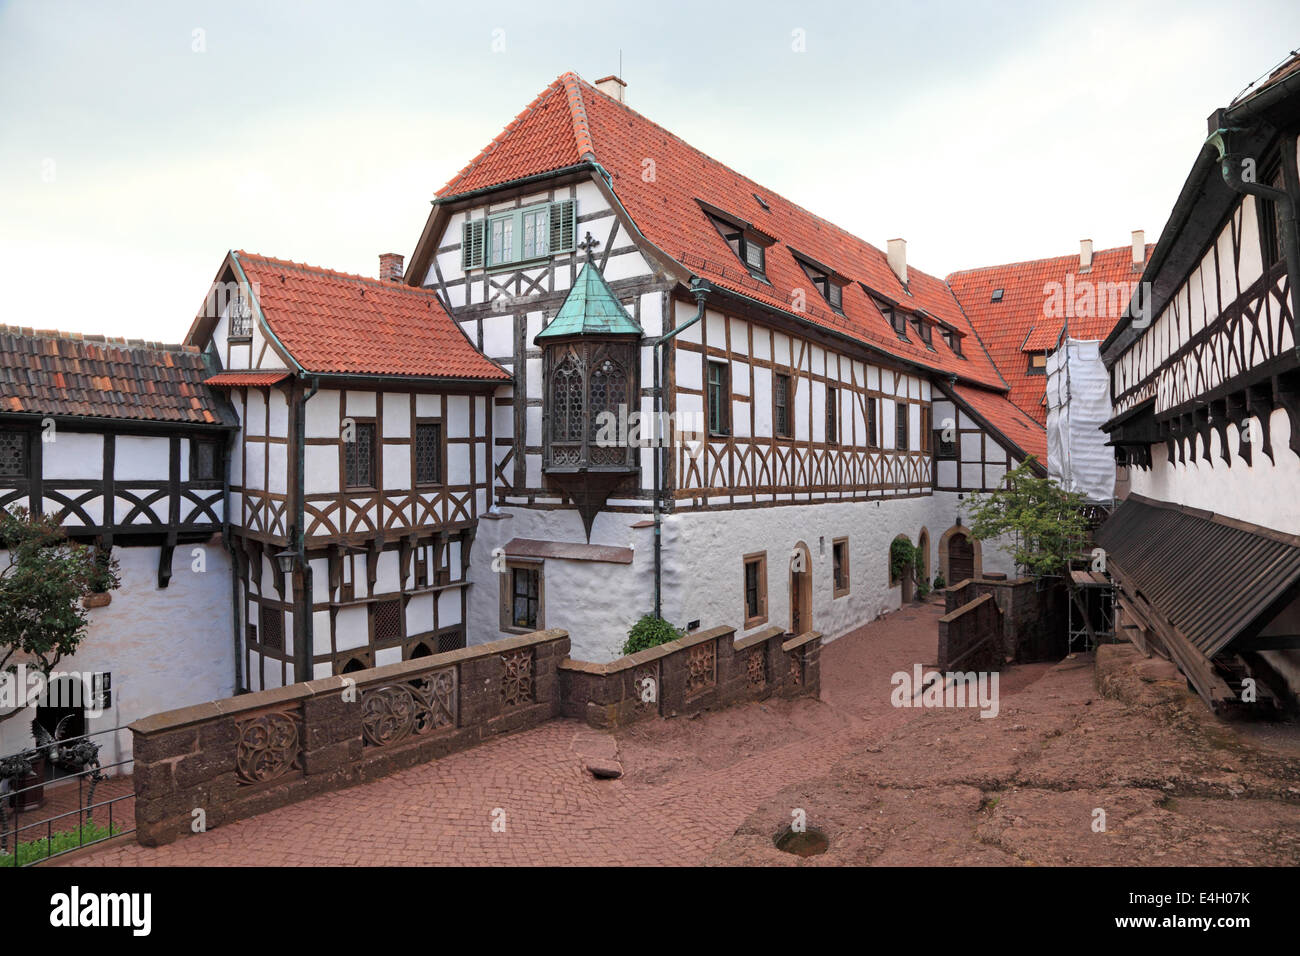 Half timbered house at the Wartburg Castle in Thuringia, Germany - Stock Image